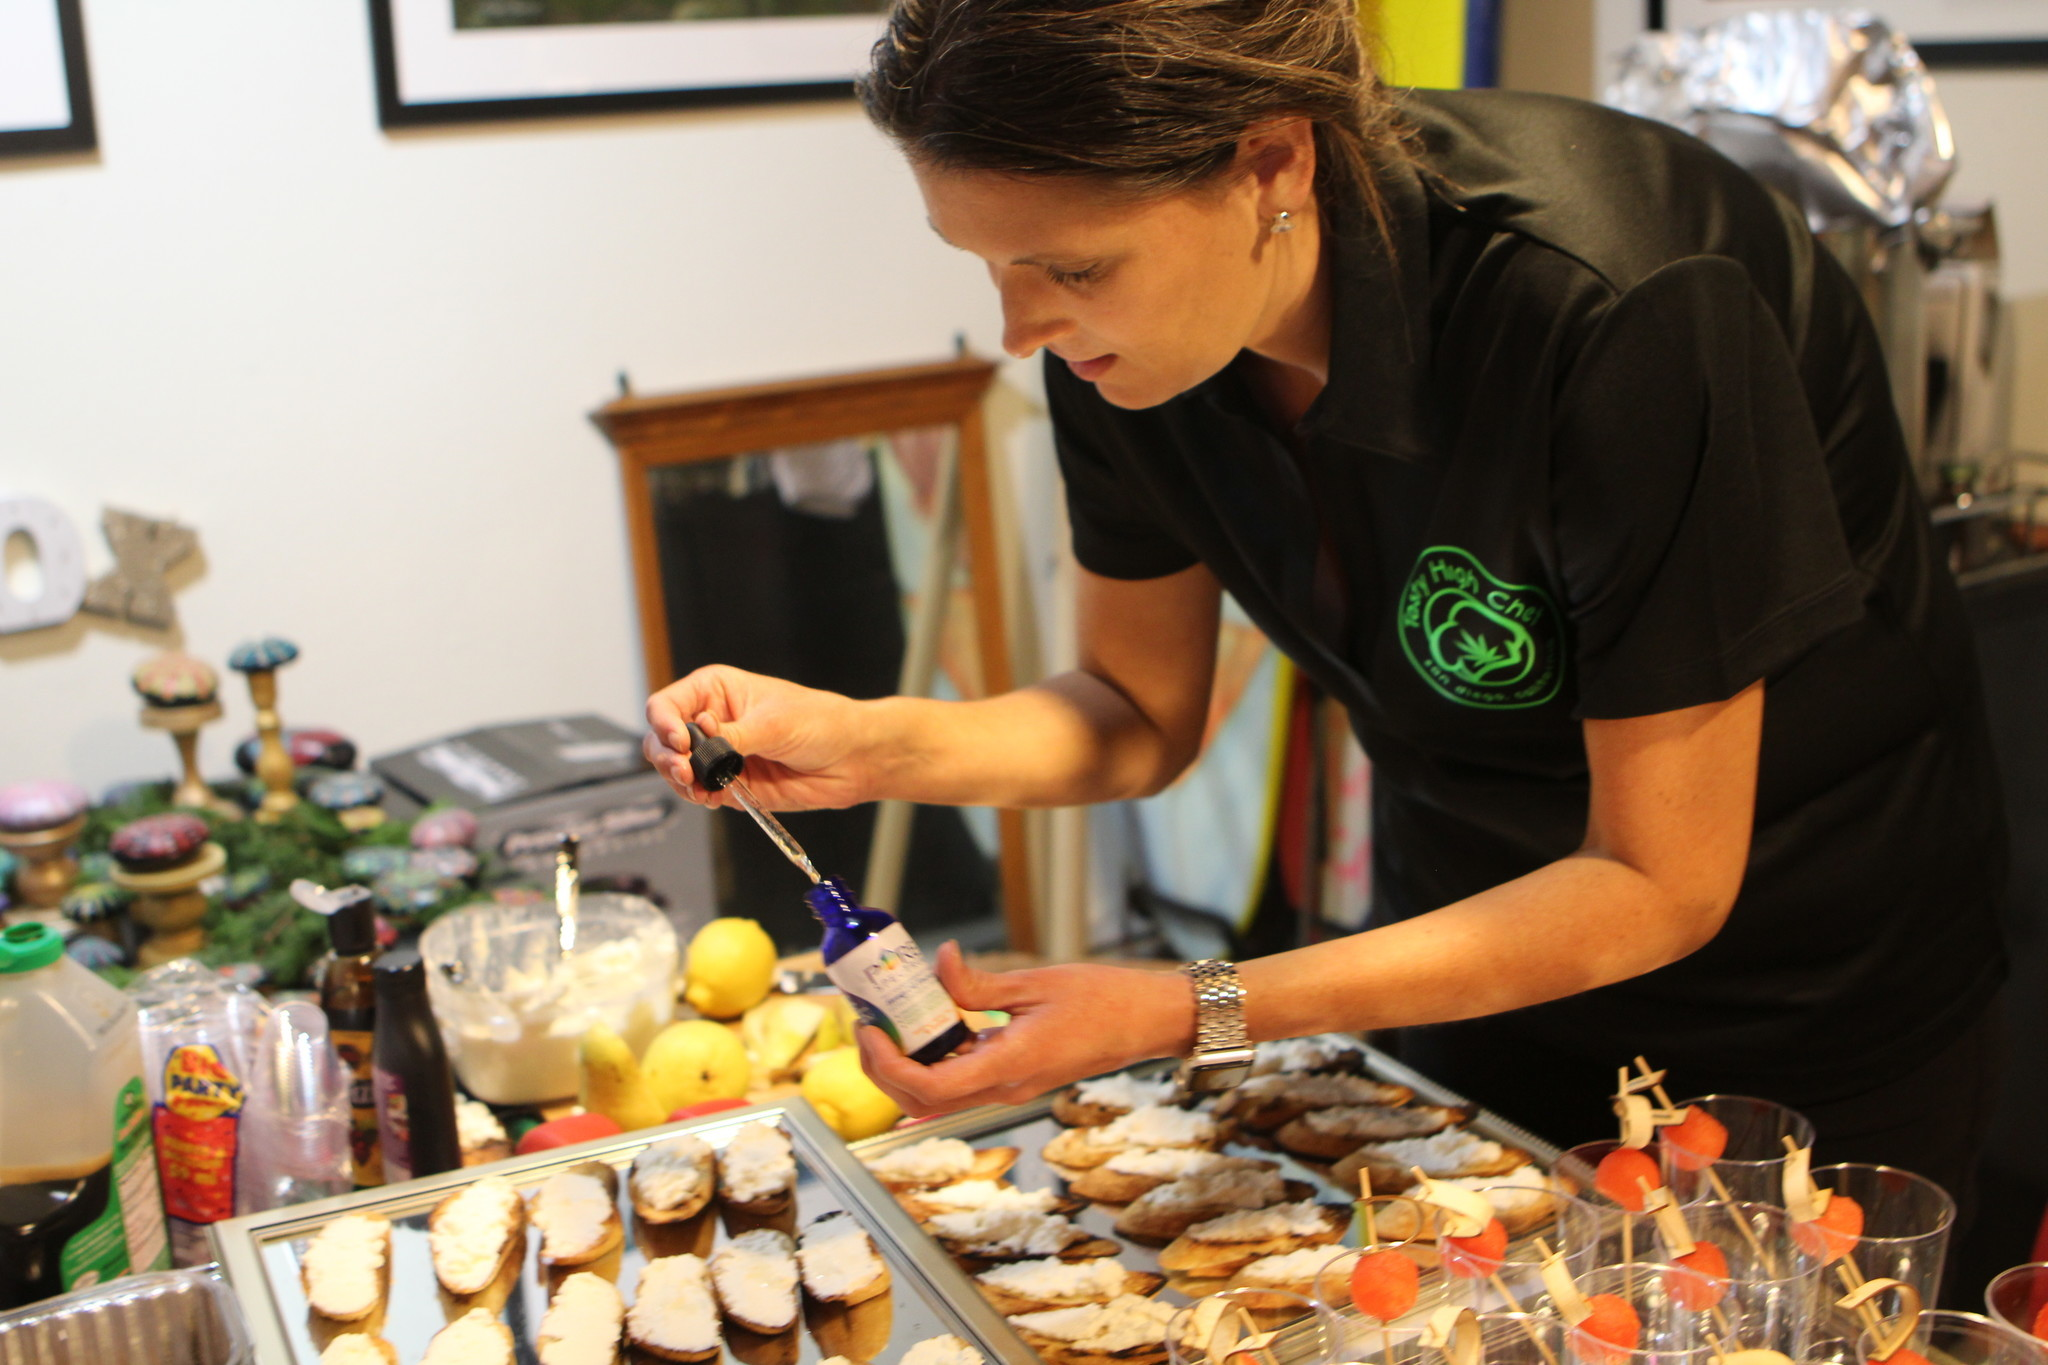 Claire adds 50 ml of Pure Spectrum CBD oil to each serving of the Ricotta Crustini.